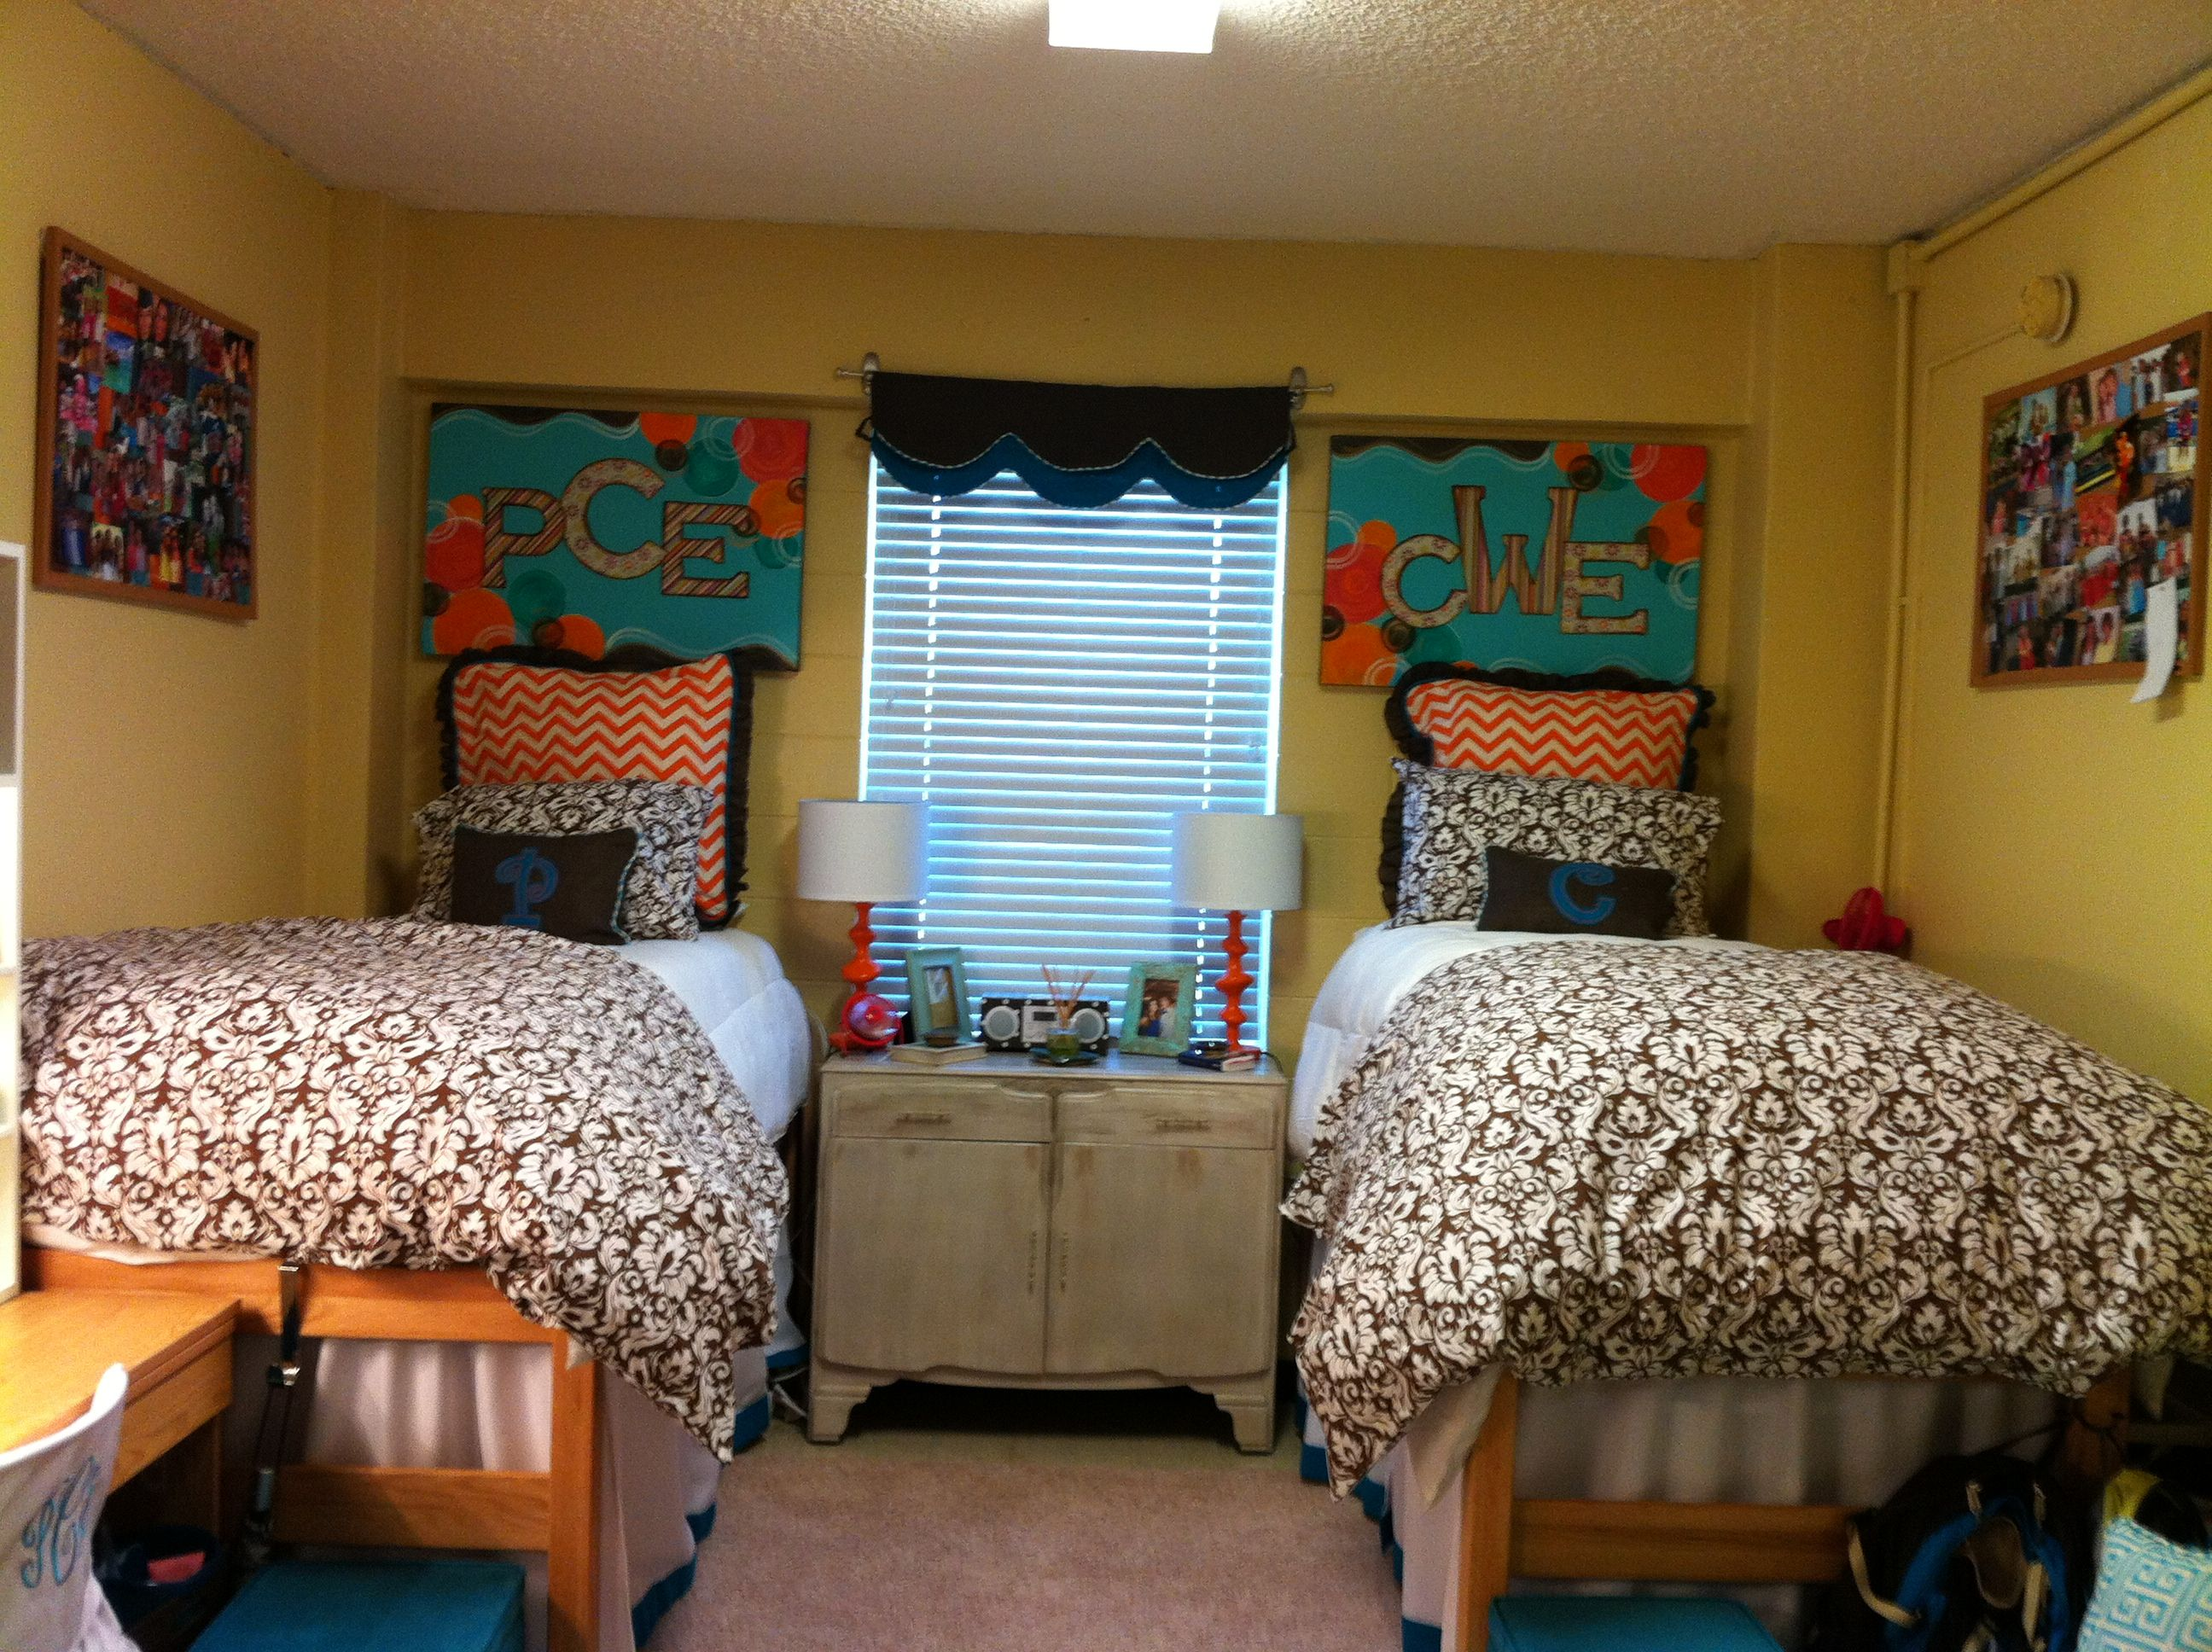 Decorating Your Room Is An Important Aspect Of Dorm Life Here Are Some Really Cute Ole Miss Rooms To Get Serious Inspiration From